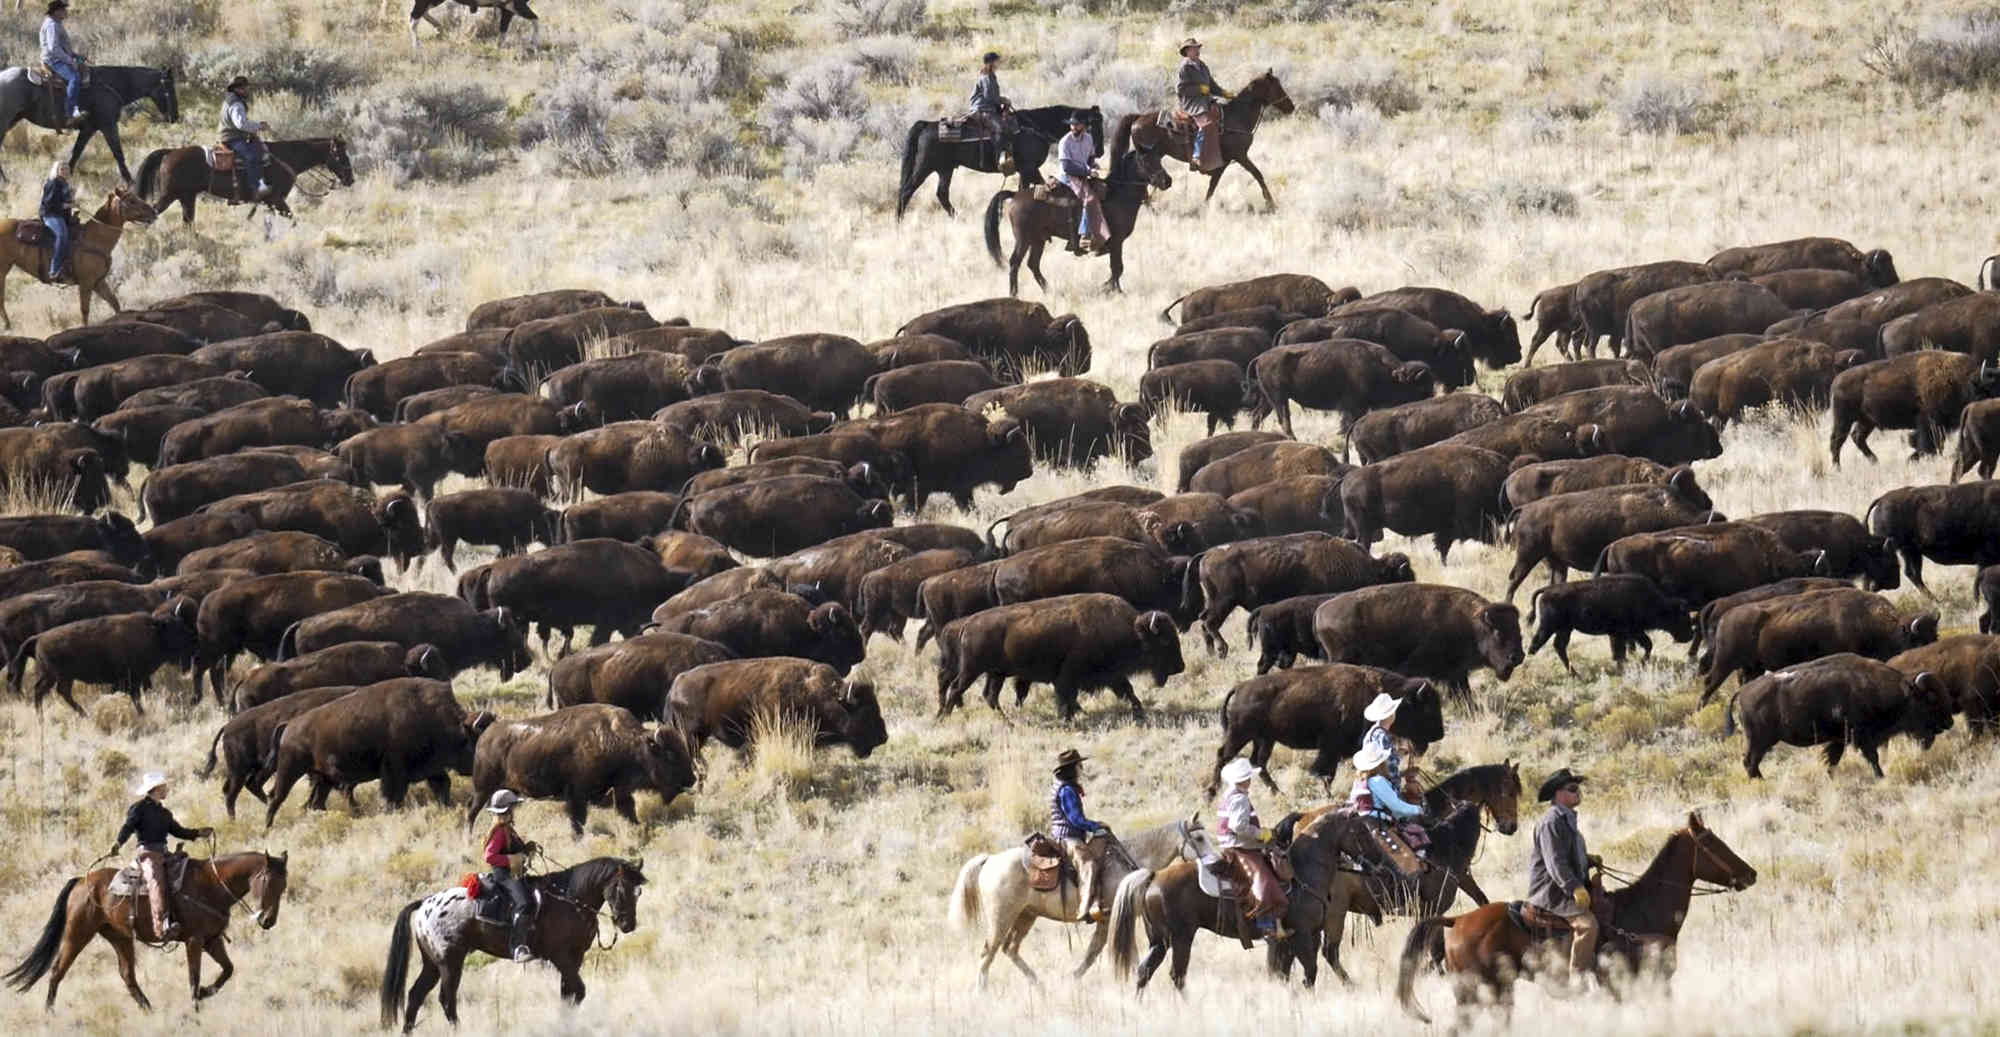 Antelope Island Bison Roundup - Dates: October 23-27, 2020Duration: the event itself is 1 day, the organized trip will be 5 days